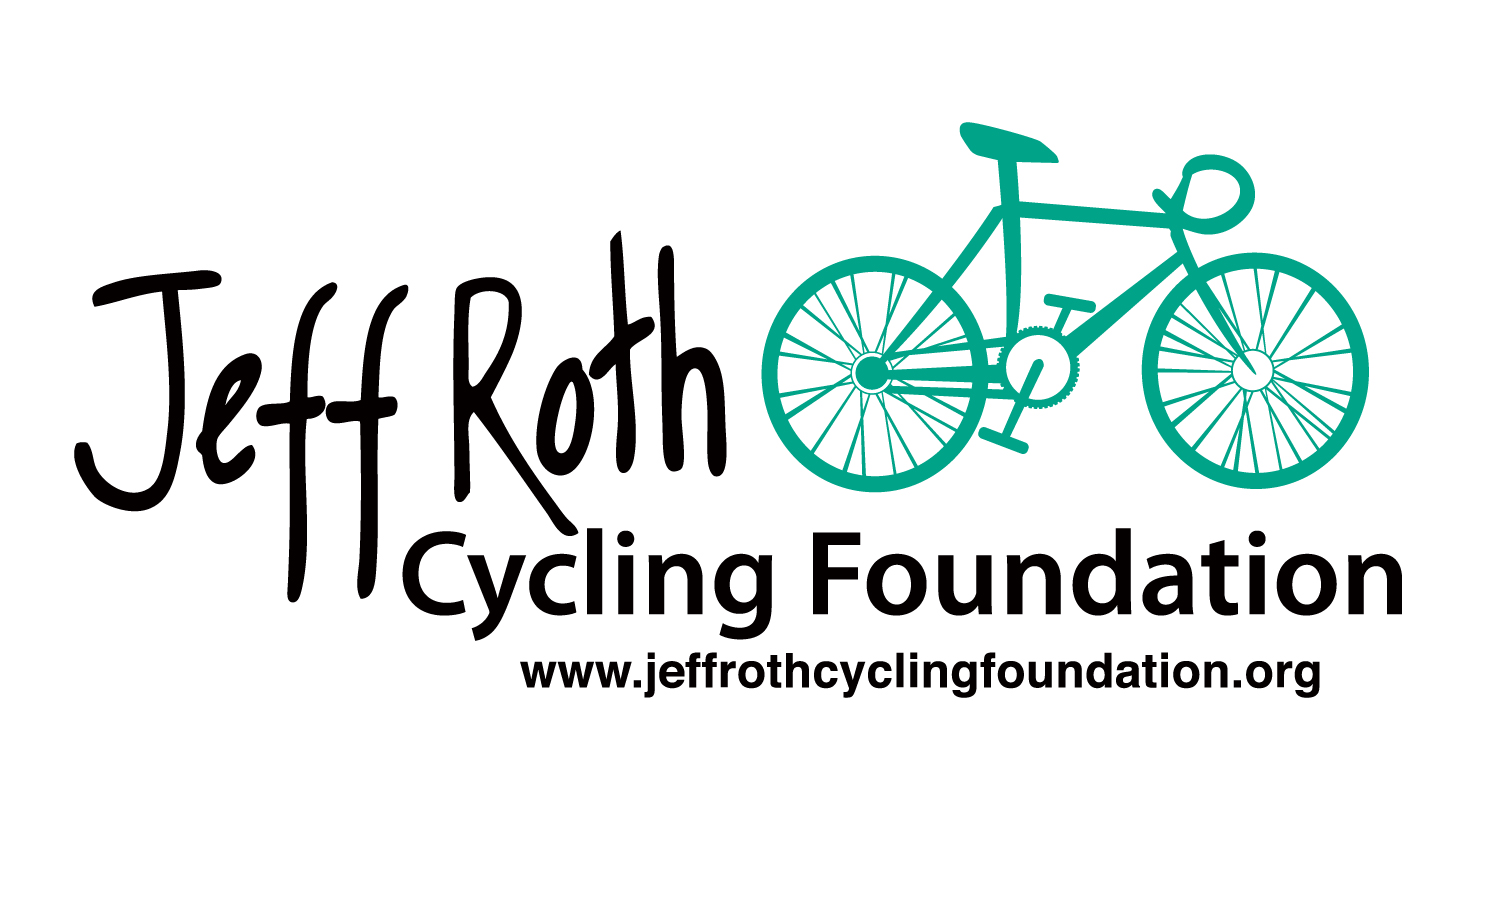 Jeff_Roth_logo_(jpeg).jpg